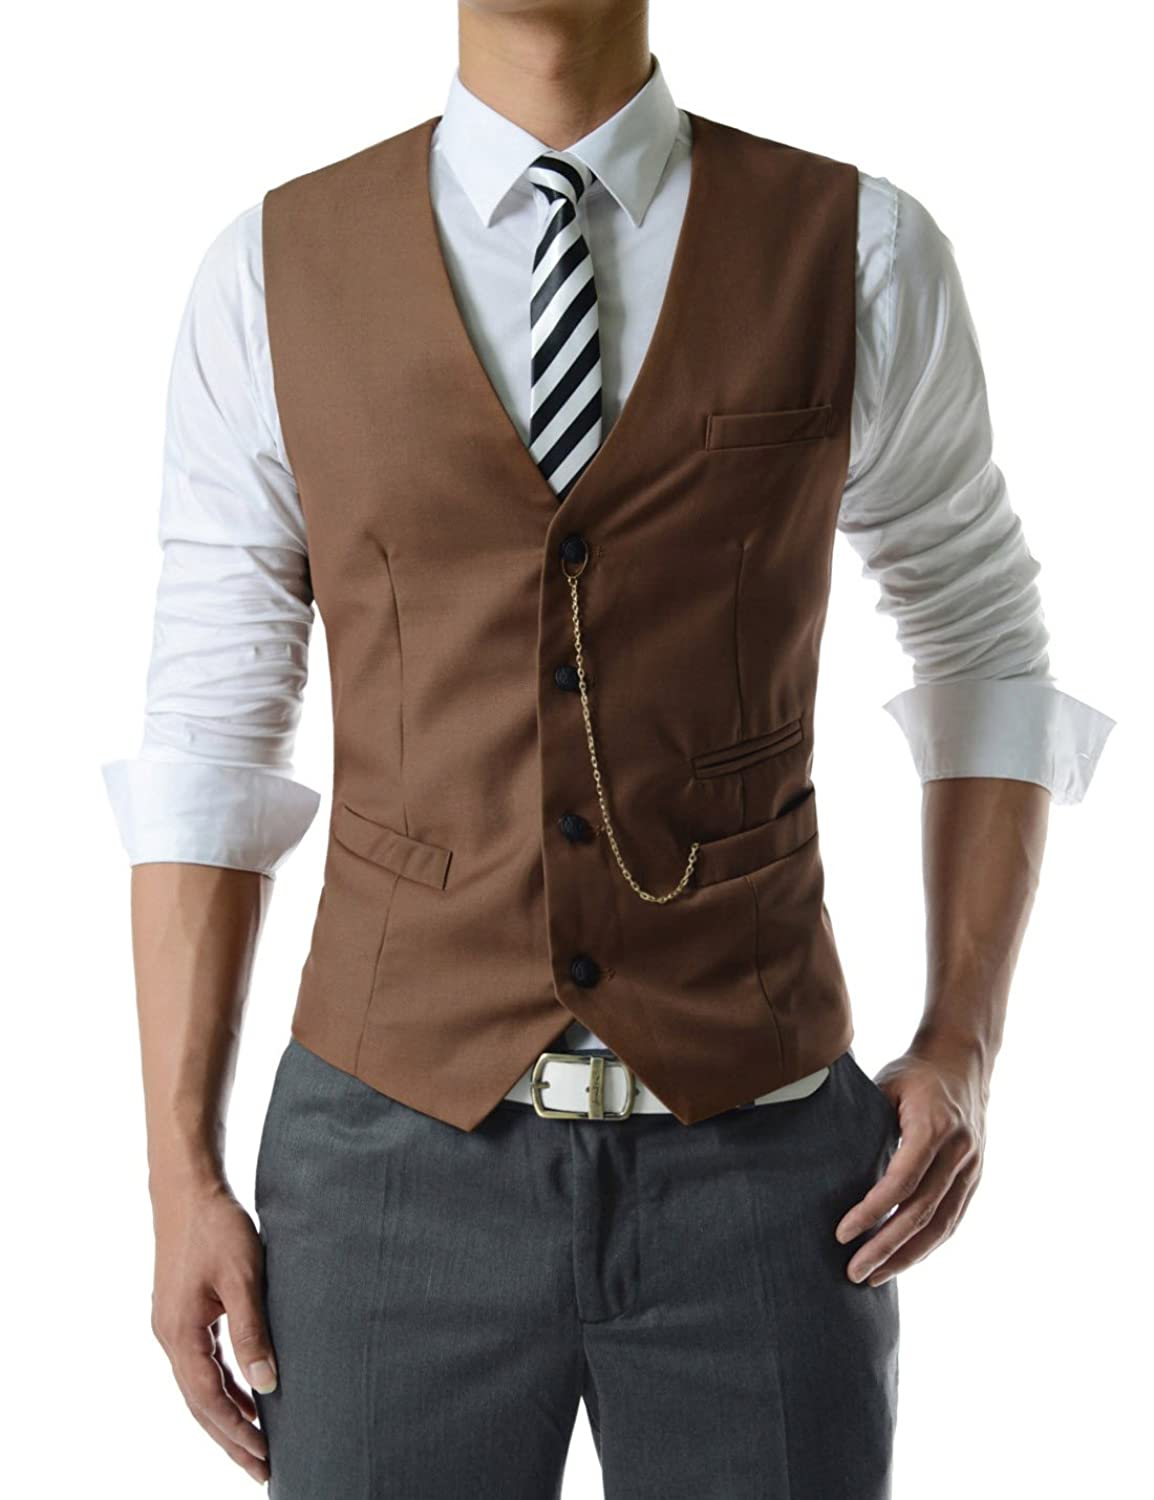 Men's Vintage Vests, Sweater Vests SVE TheLees Mens slim fit chain point 3 button vest $33.99 AT vintagedancer.com